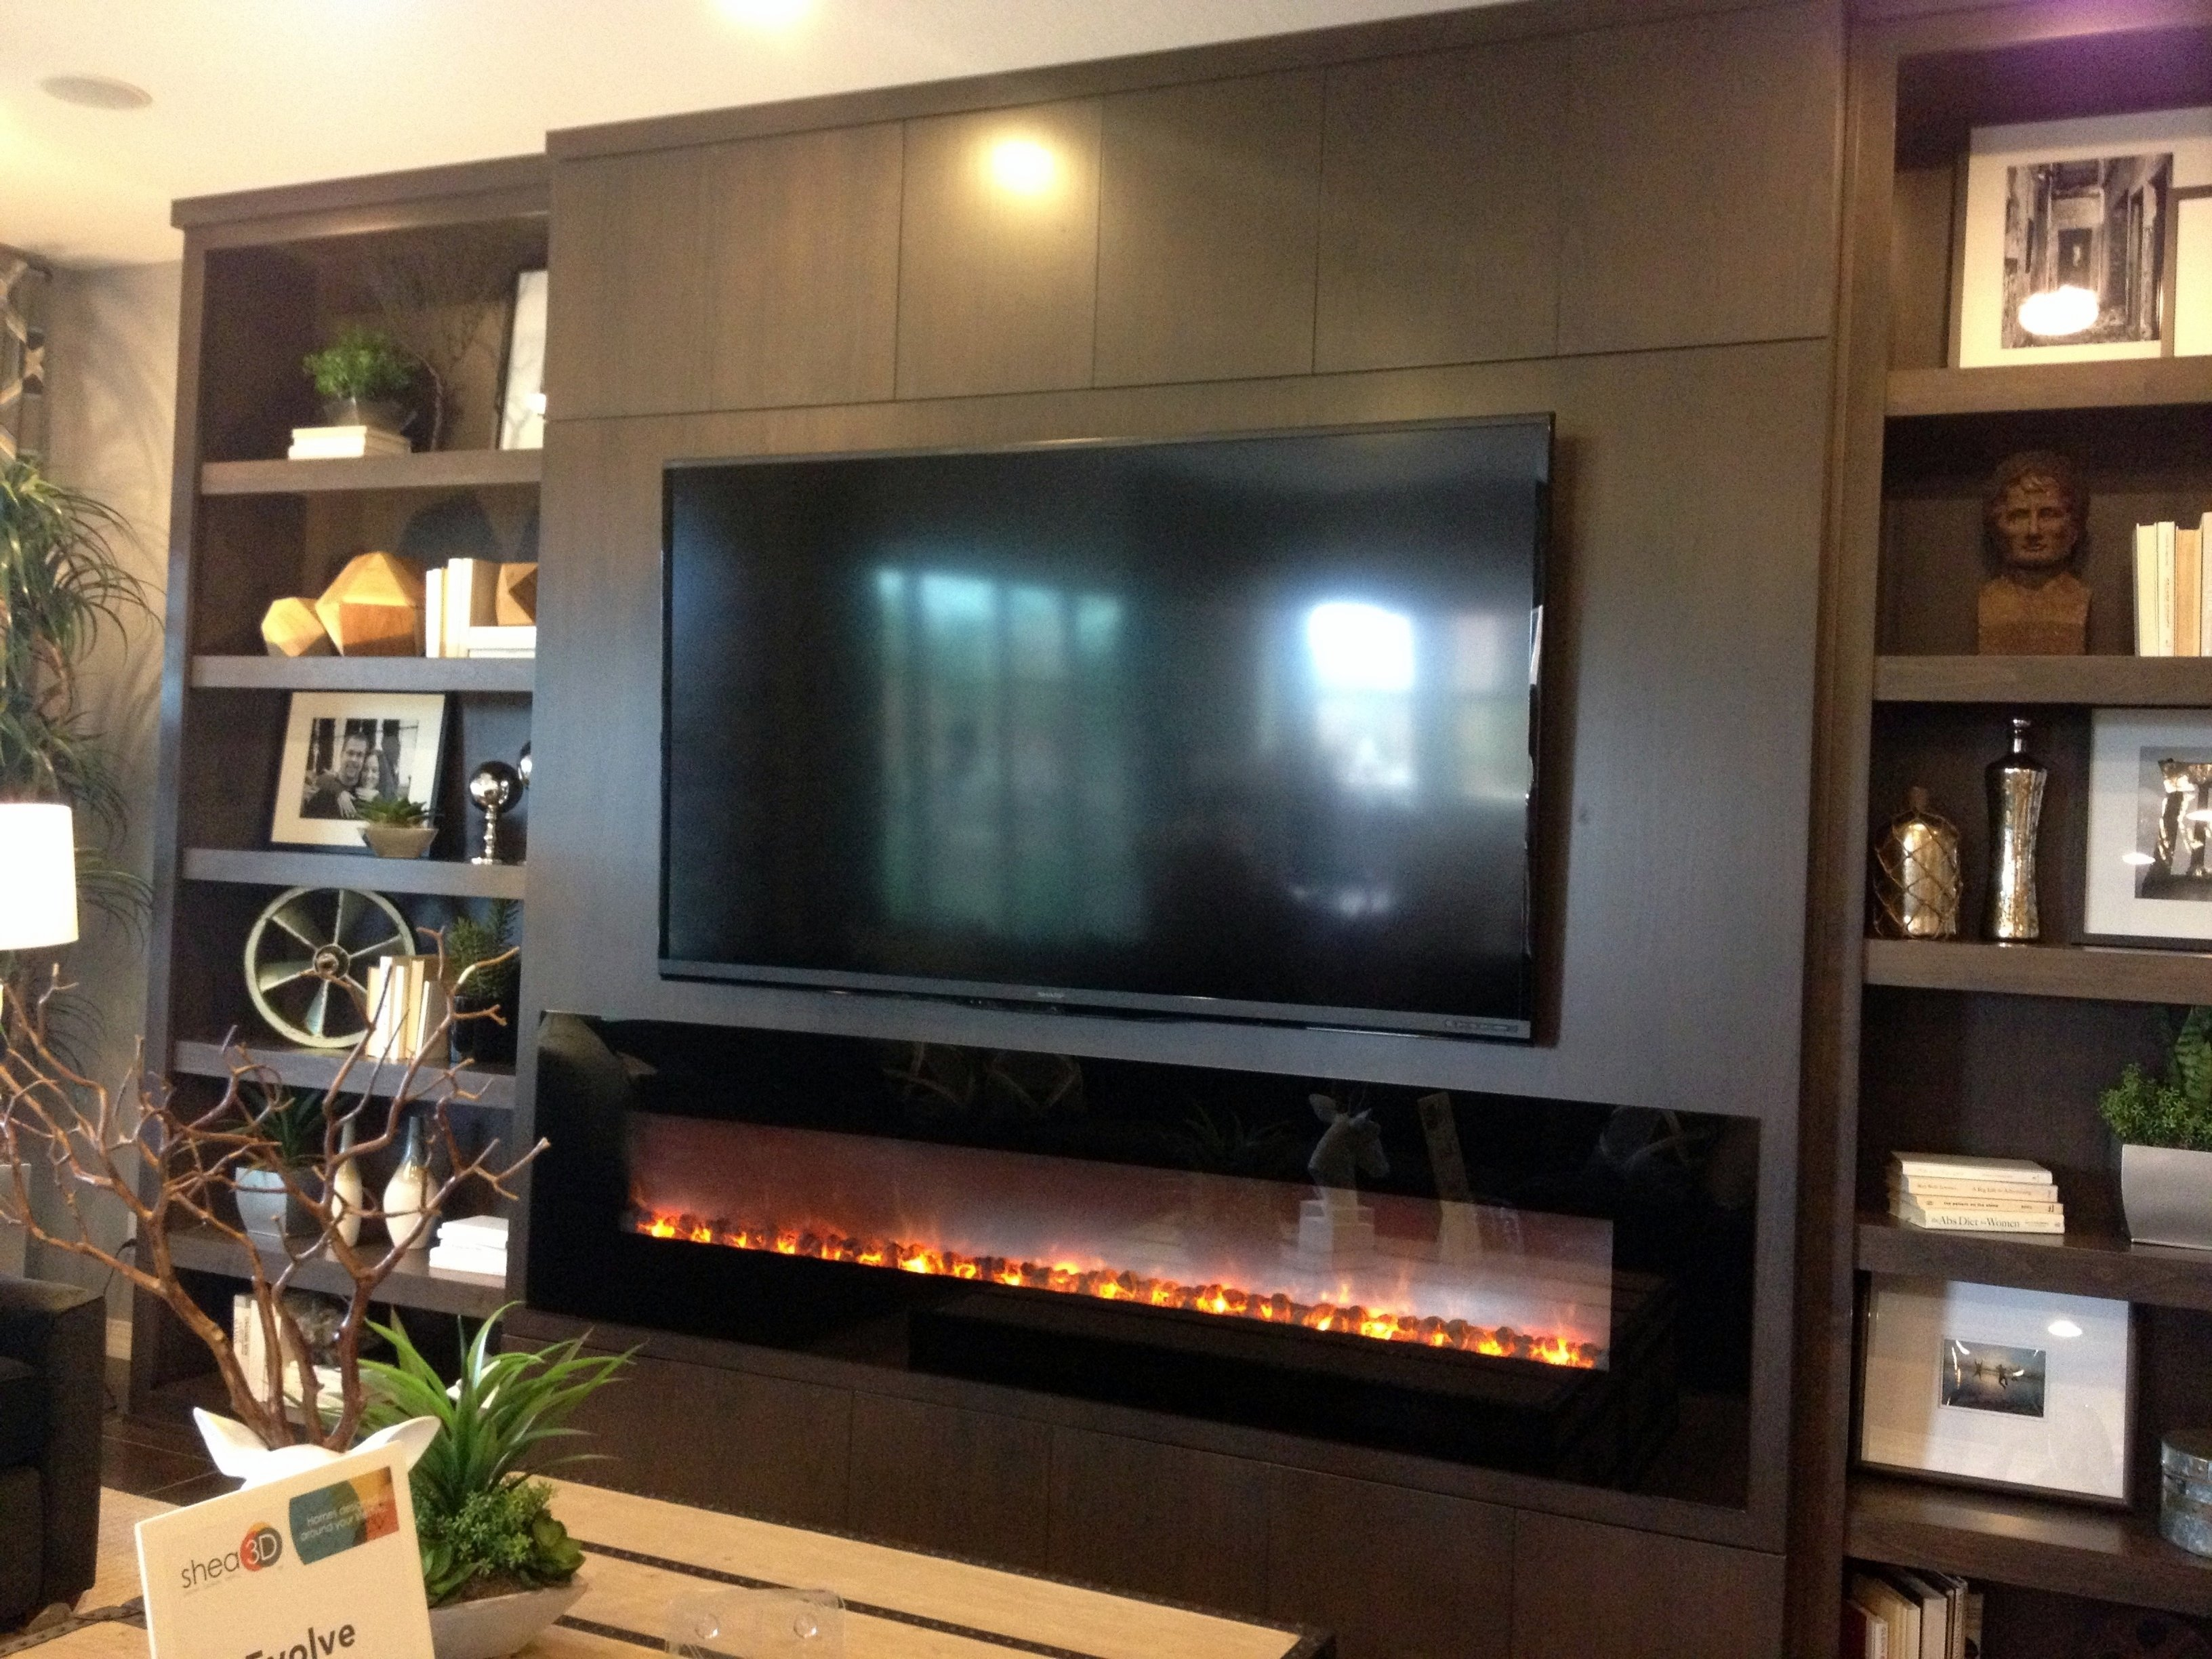 10 Awesome Built In Entertainment Center Ideas 15 entertainment center with fireplace ideas selection page 2 of 3 2020